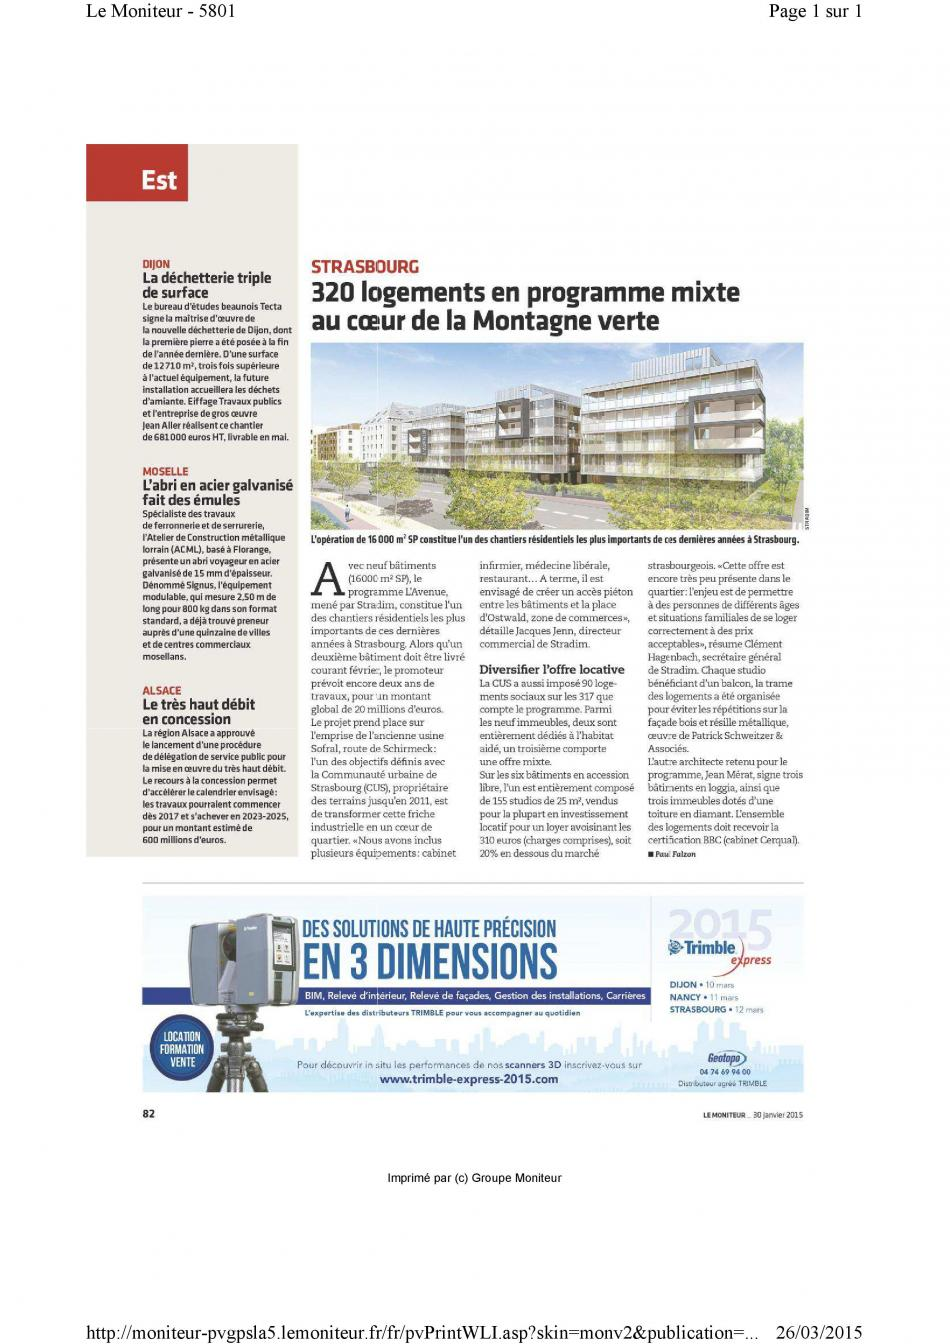 article_du_moniteur_l_avenue_30.01.2015-page-001.jpg